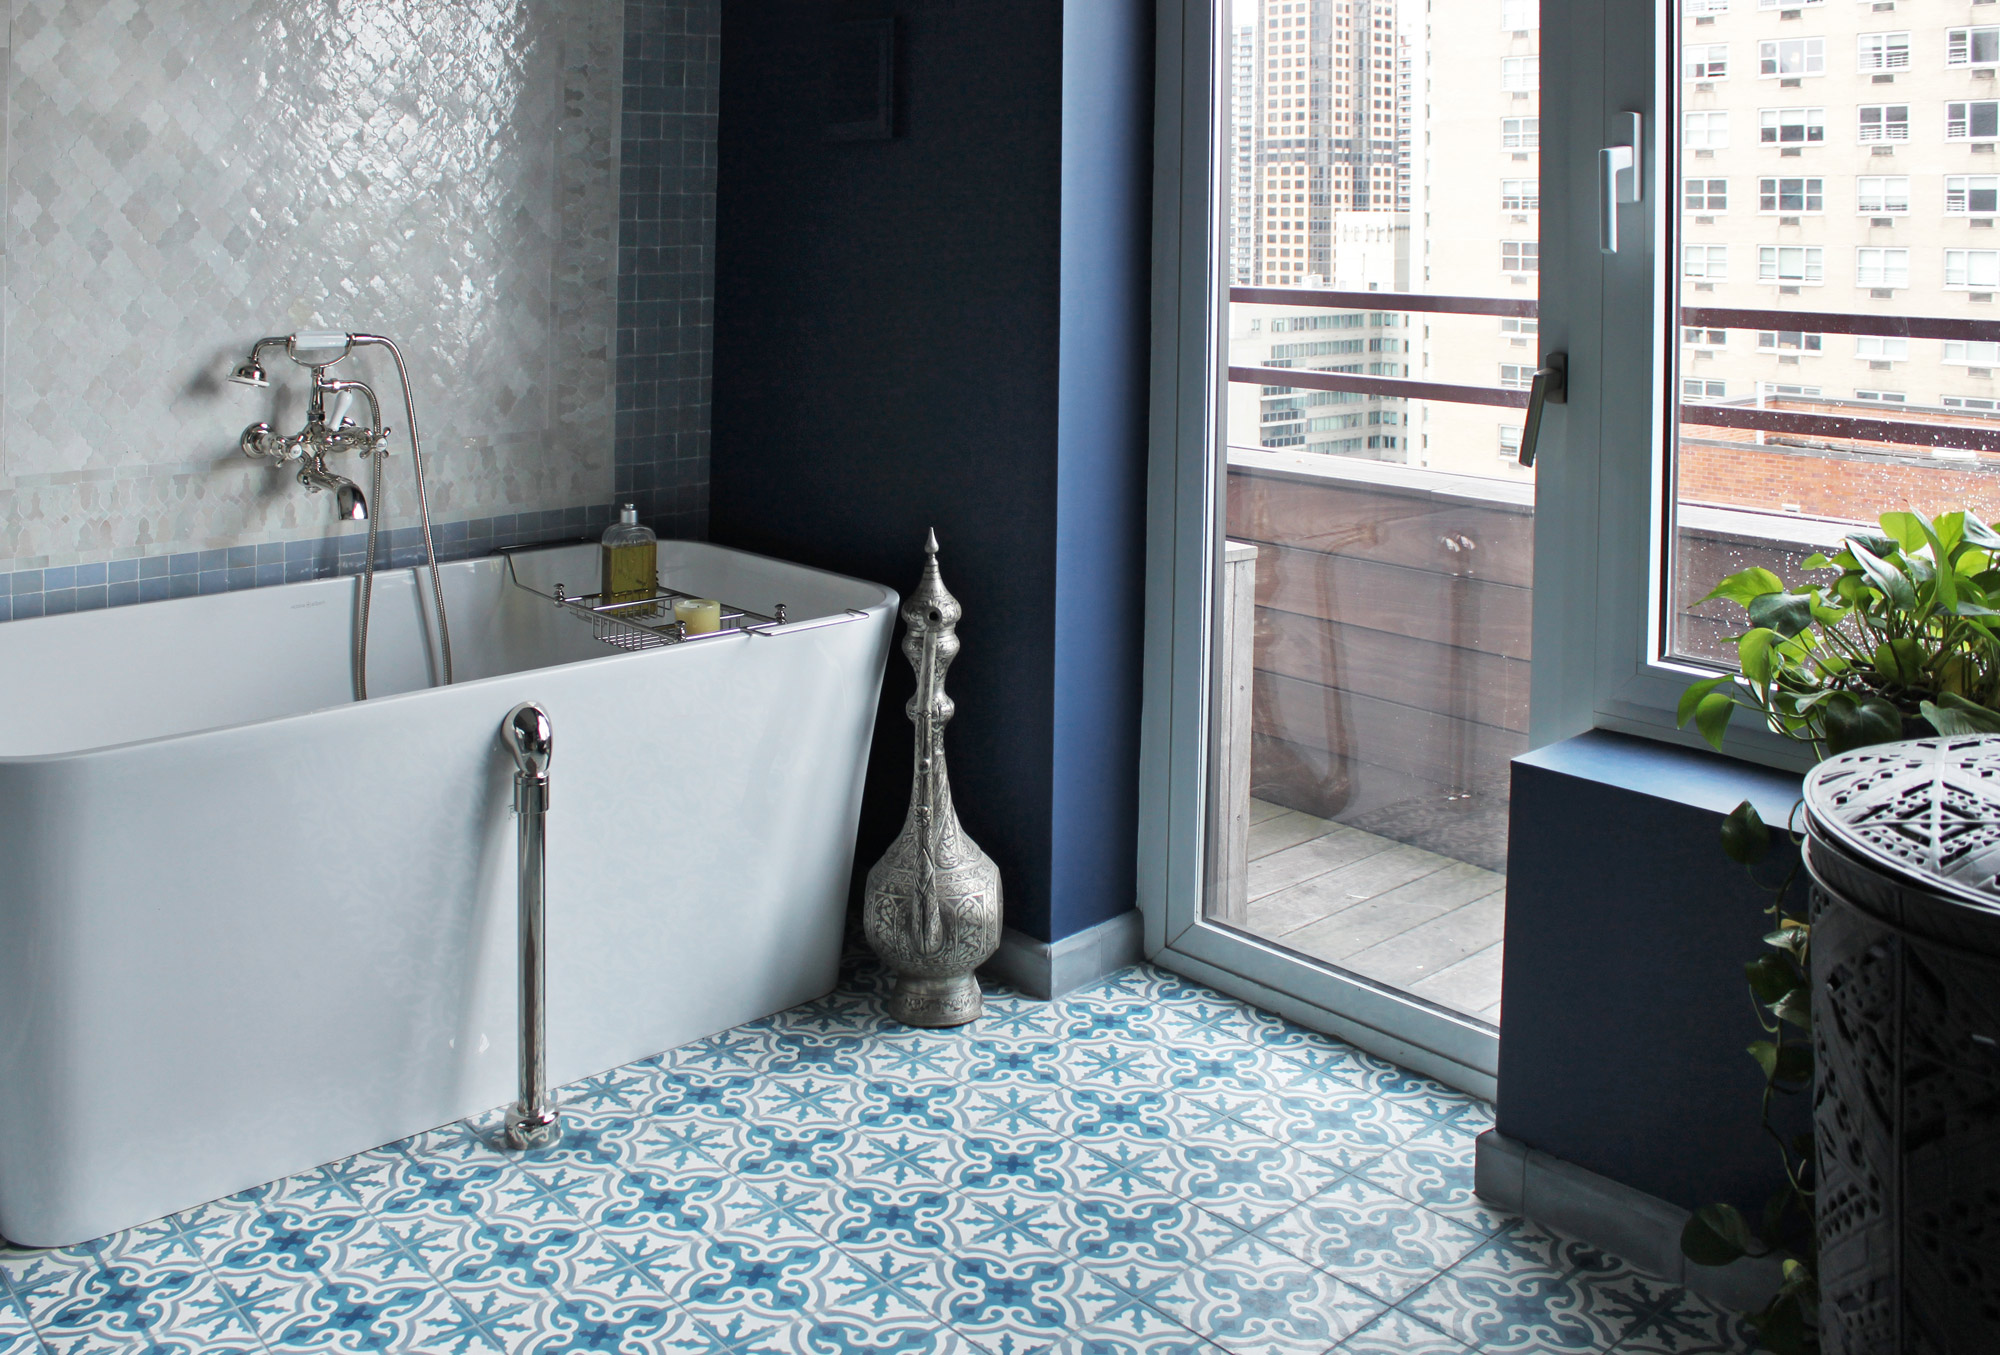 Book Of Patterned Bathroom Wall Tiles In Australia By Liam | eyagci.com